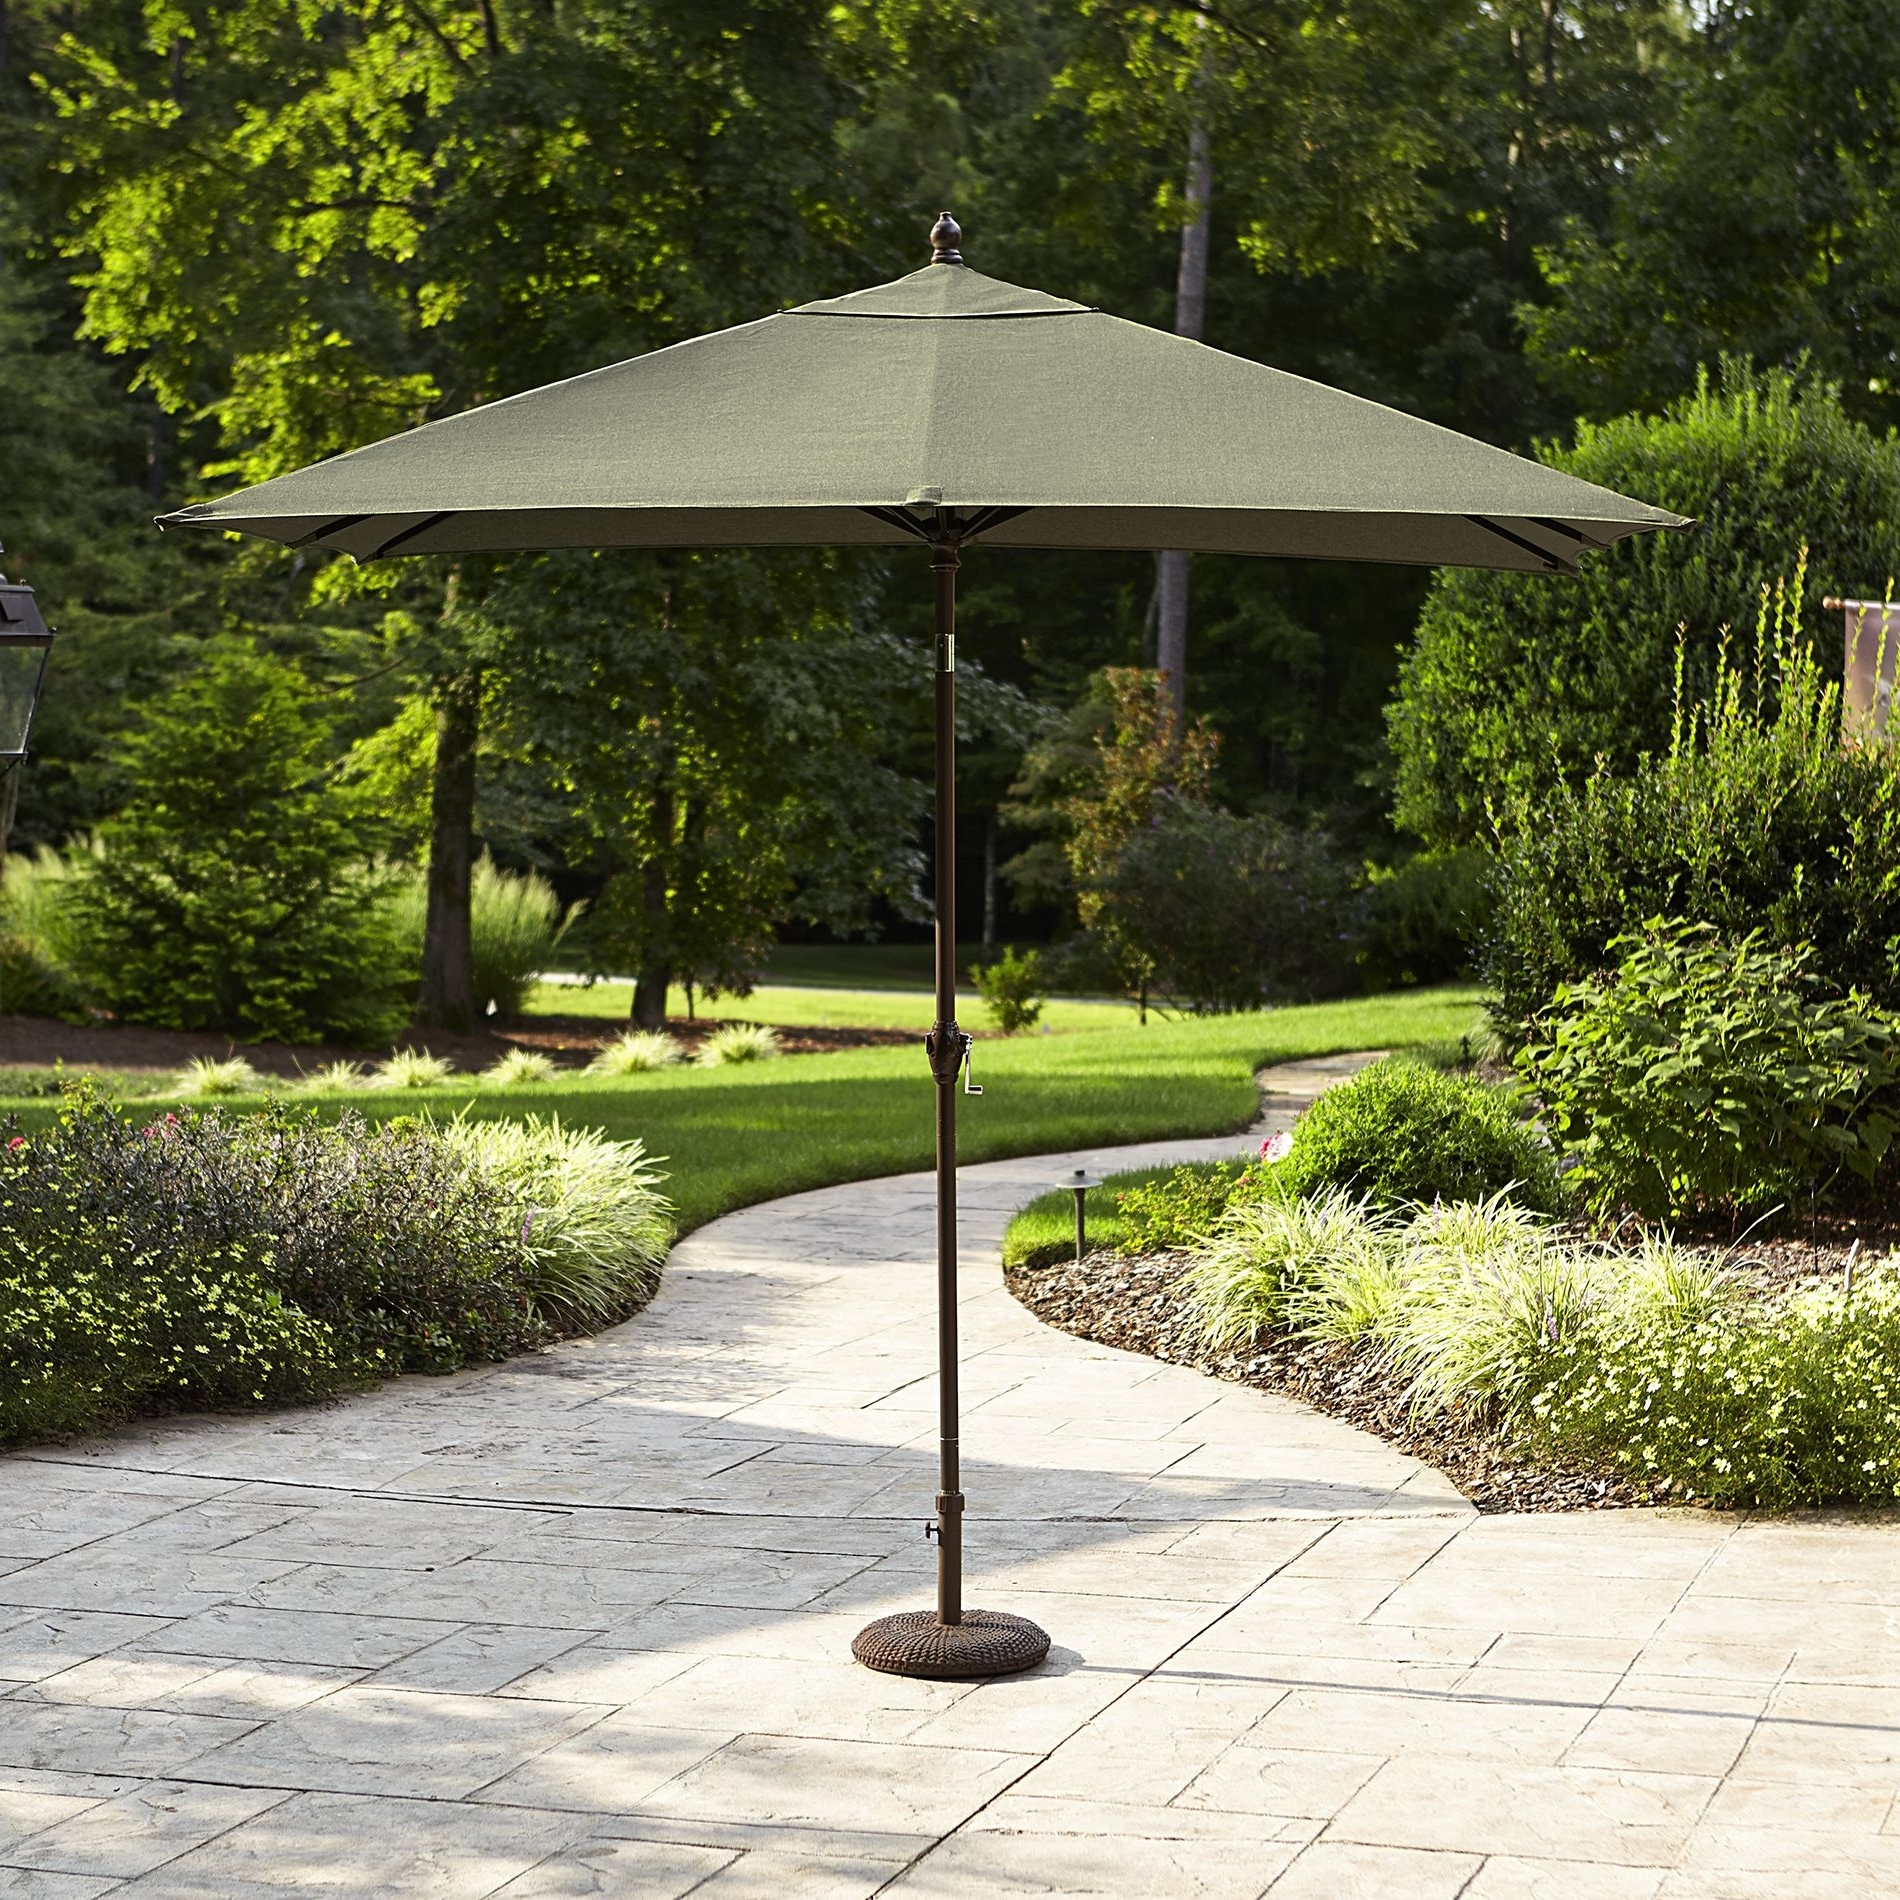 Sears: Green La Z Boy Madeline 9' X 6' Rectangular Patio Umbrella Regarding 2019 Sears Patio Umbrellas (View 17 of 20)